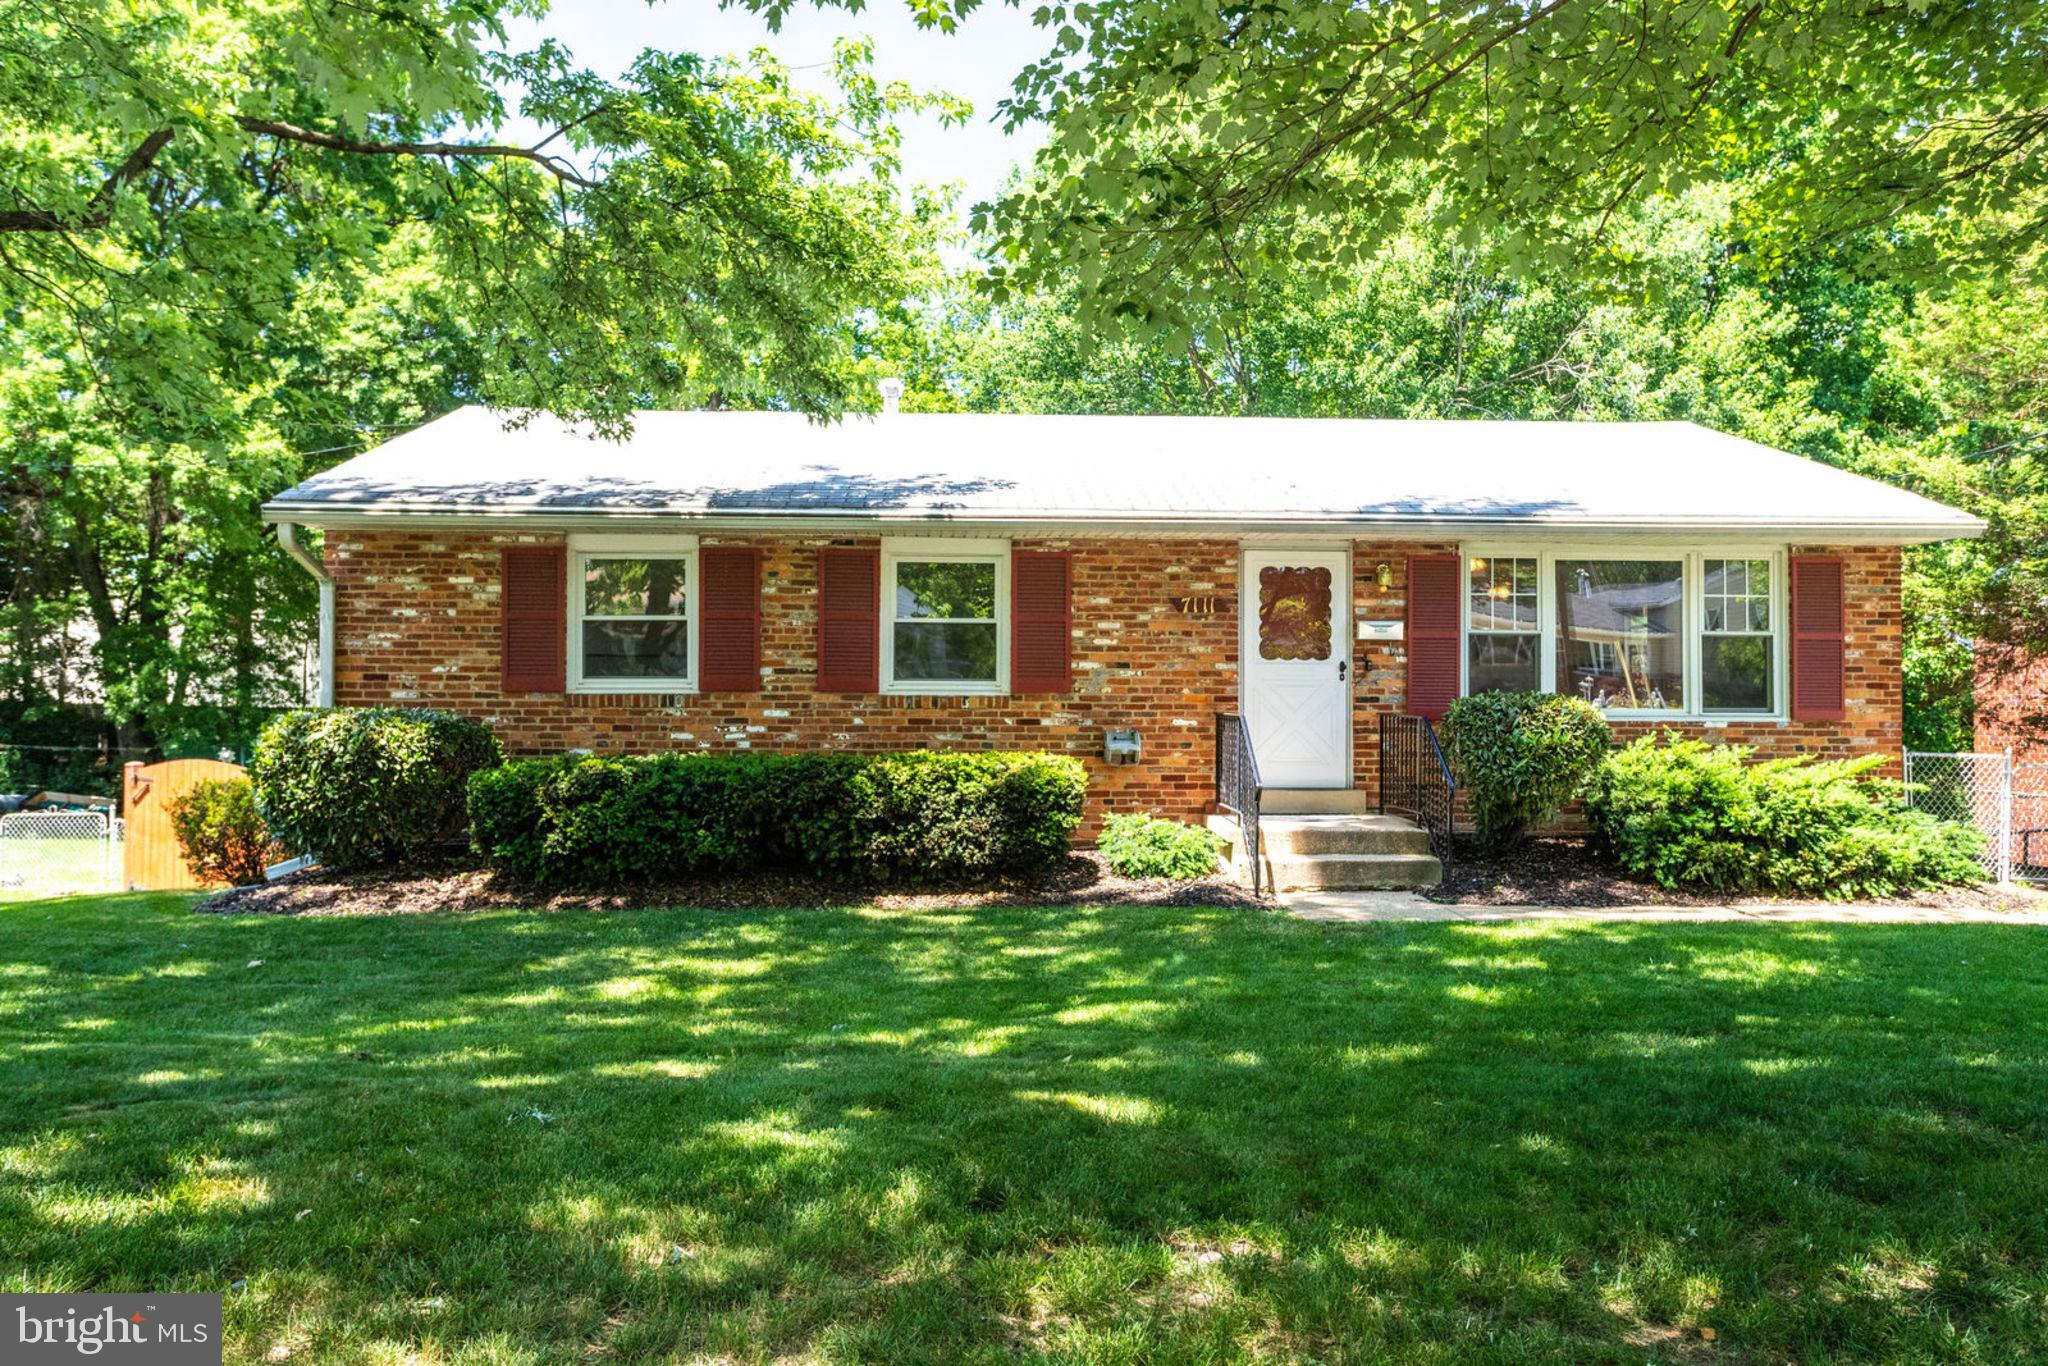 Welcome to 7111 Layton Drive. This charming brick rambler features a large in-ground swimming pool and is located walking distance to Springfield Town Center!